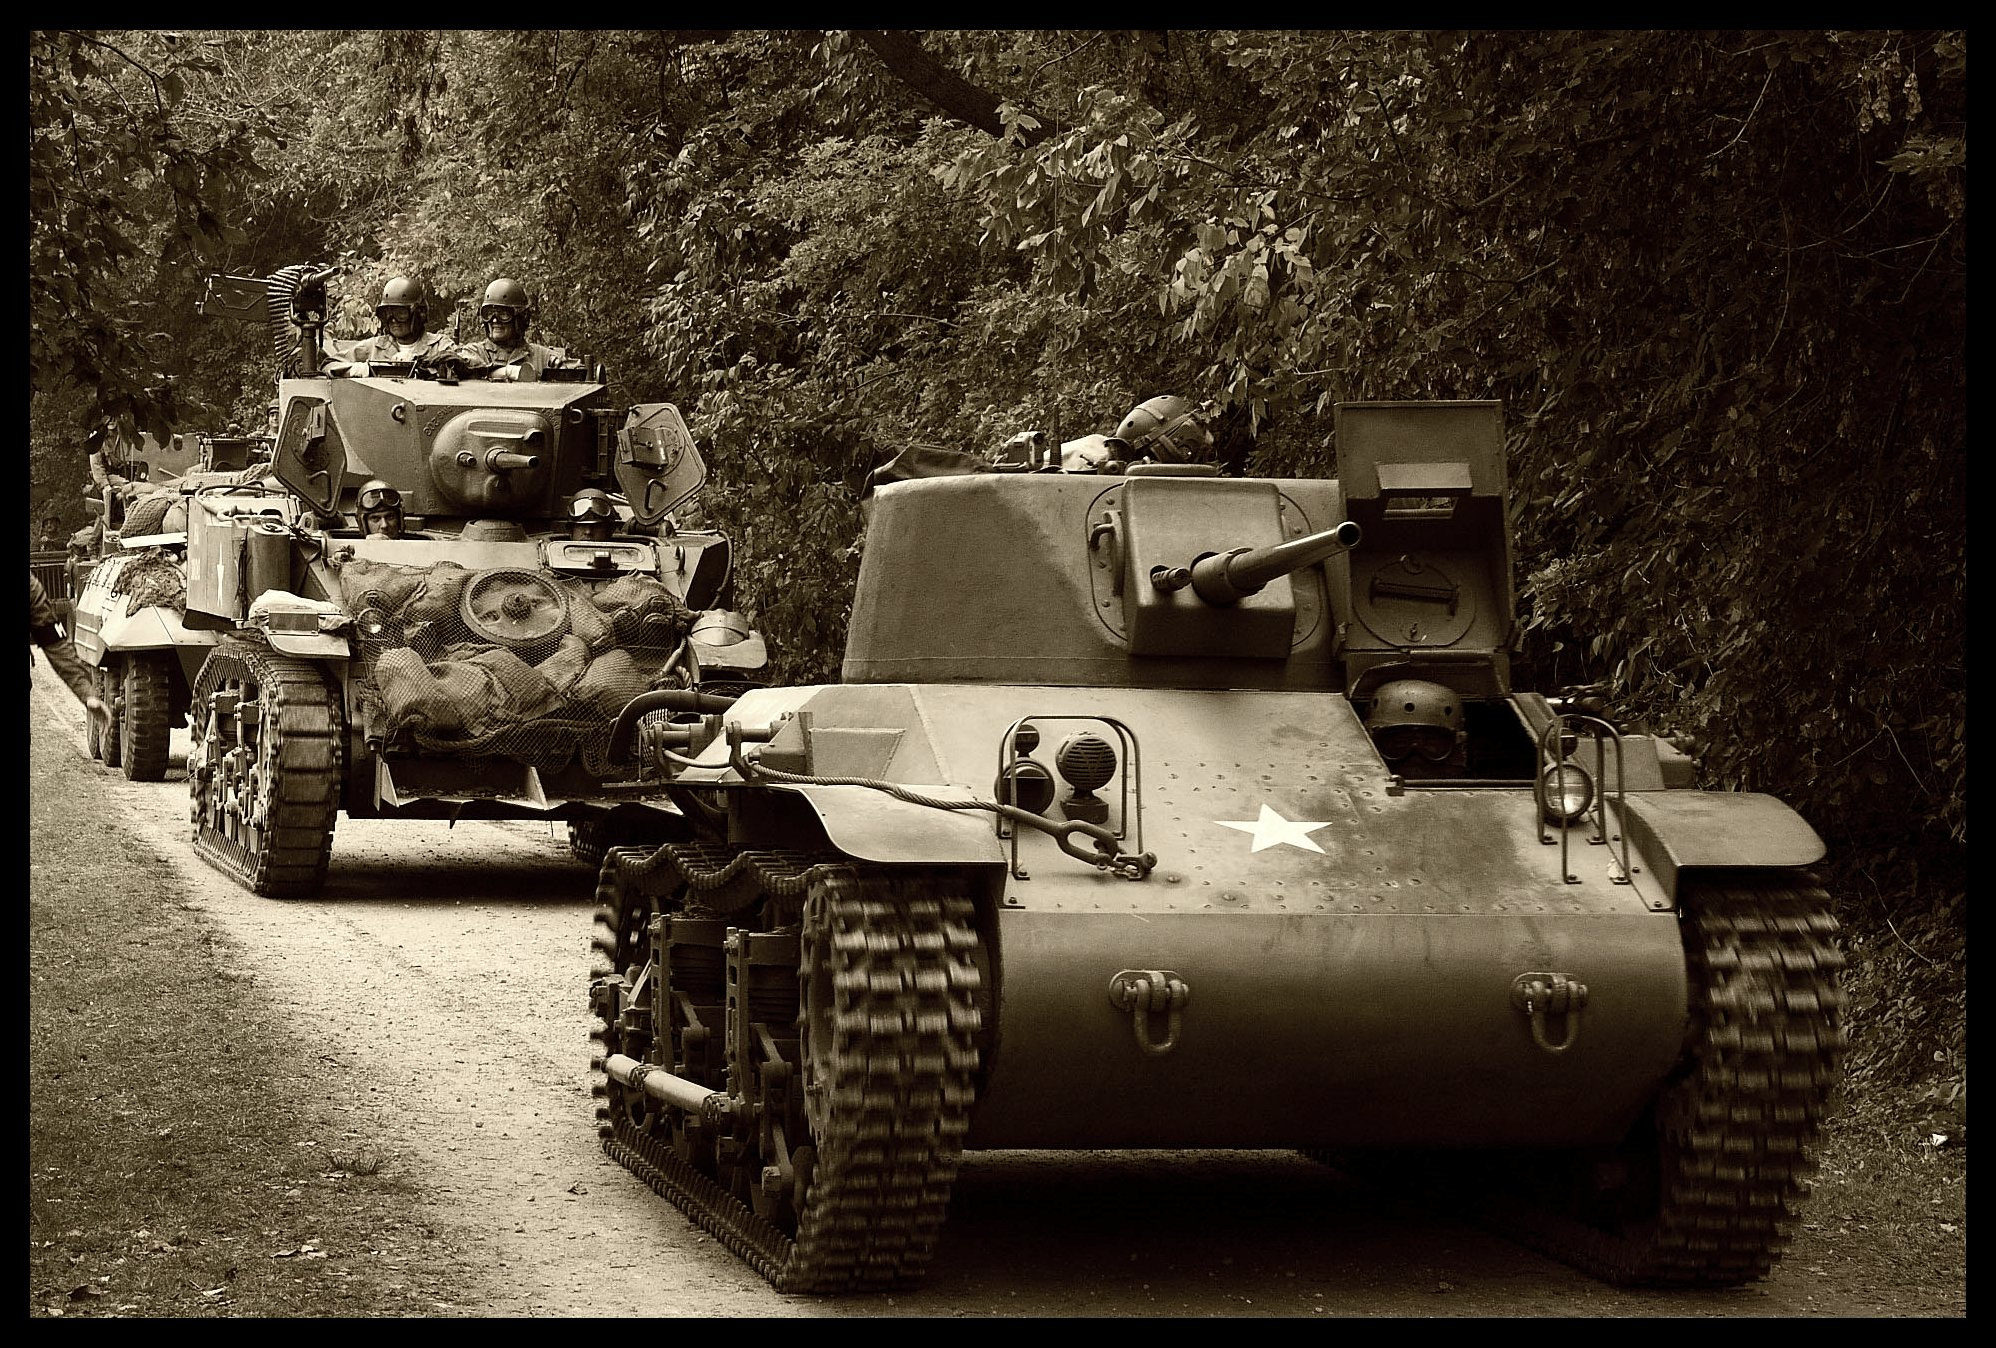 Photograph US Armor on the Move by Lyle Hatch on 500px